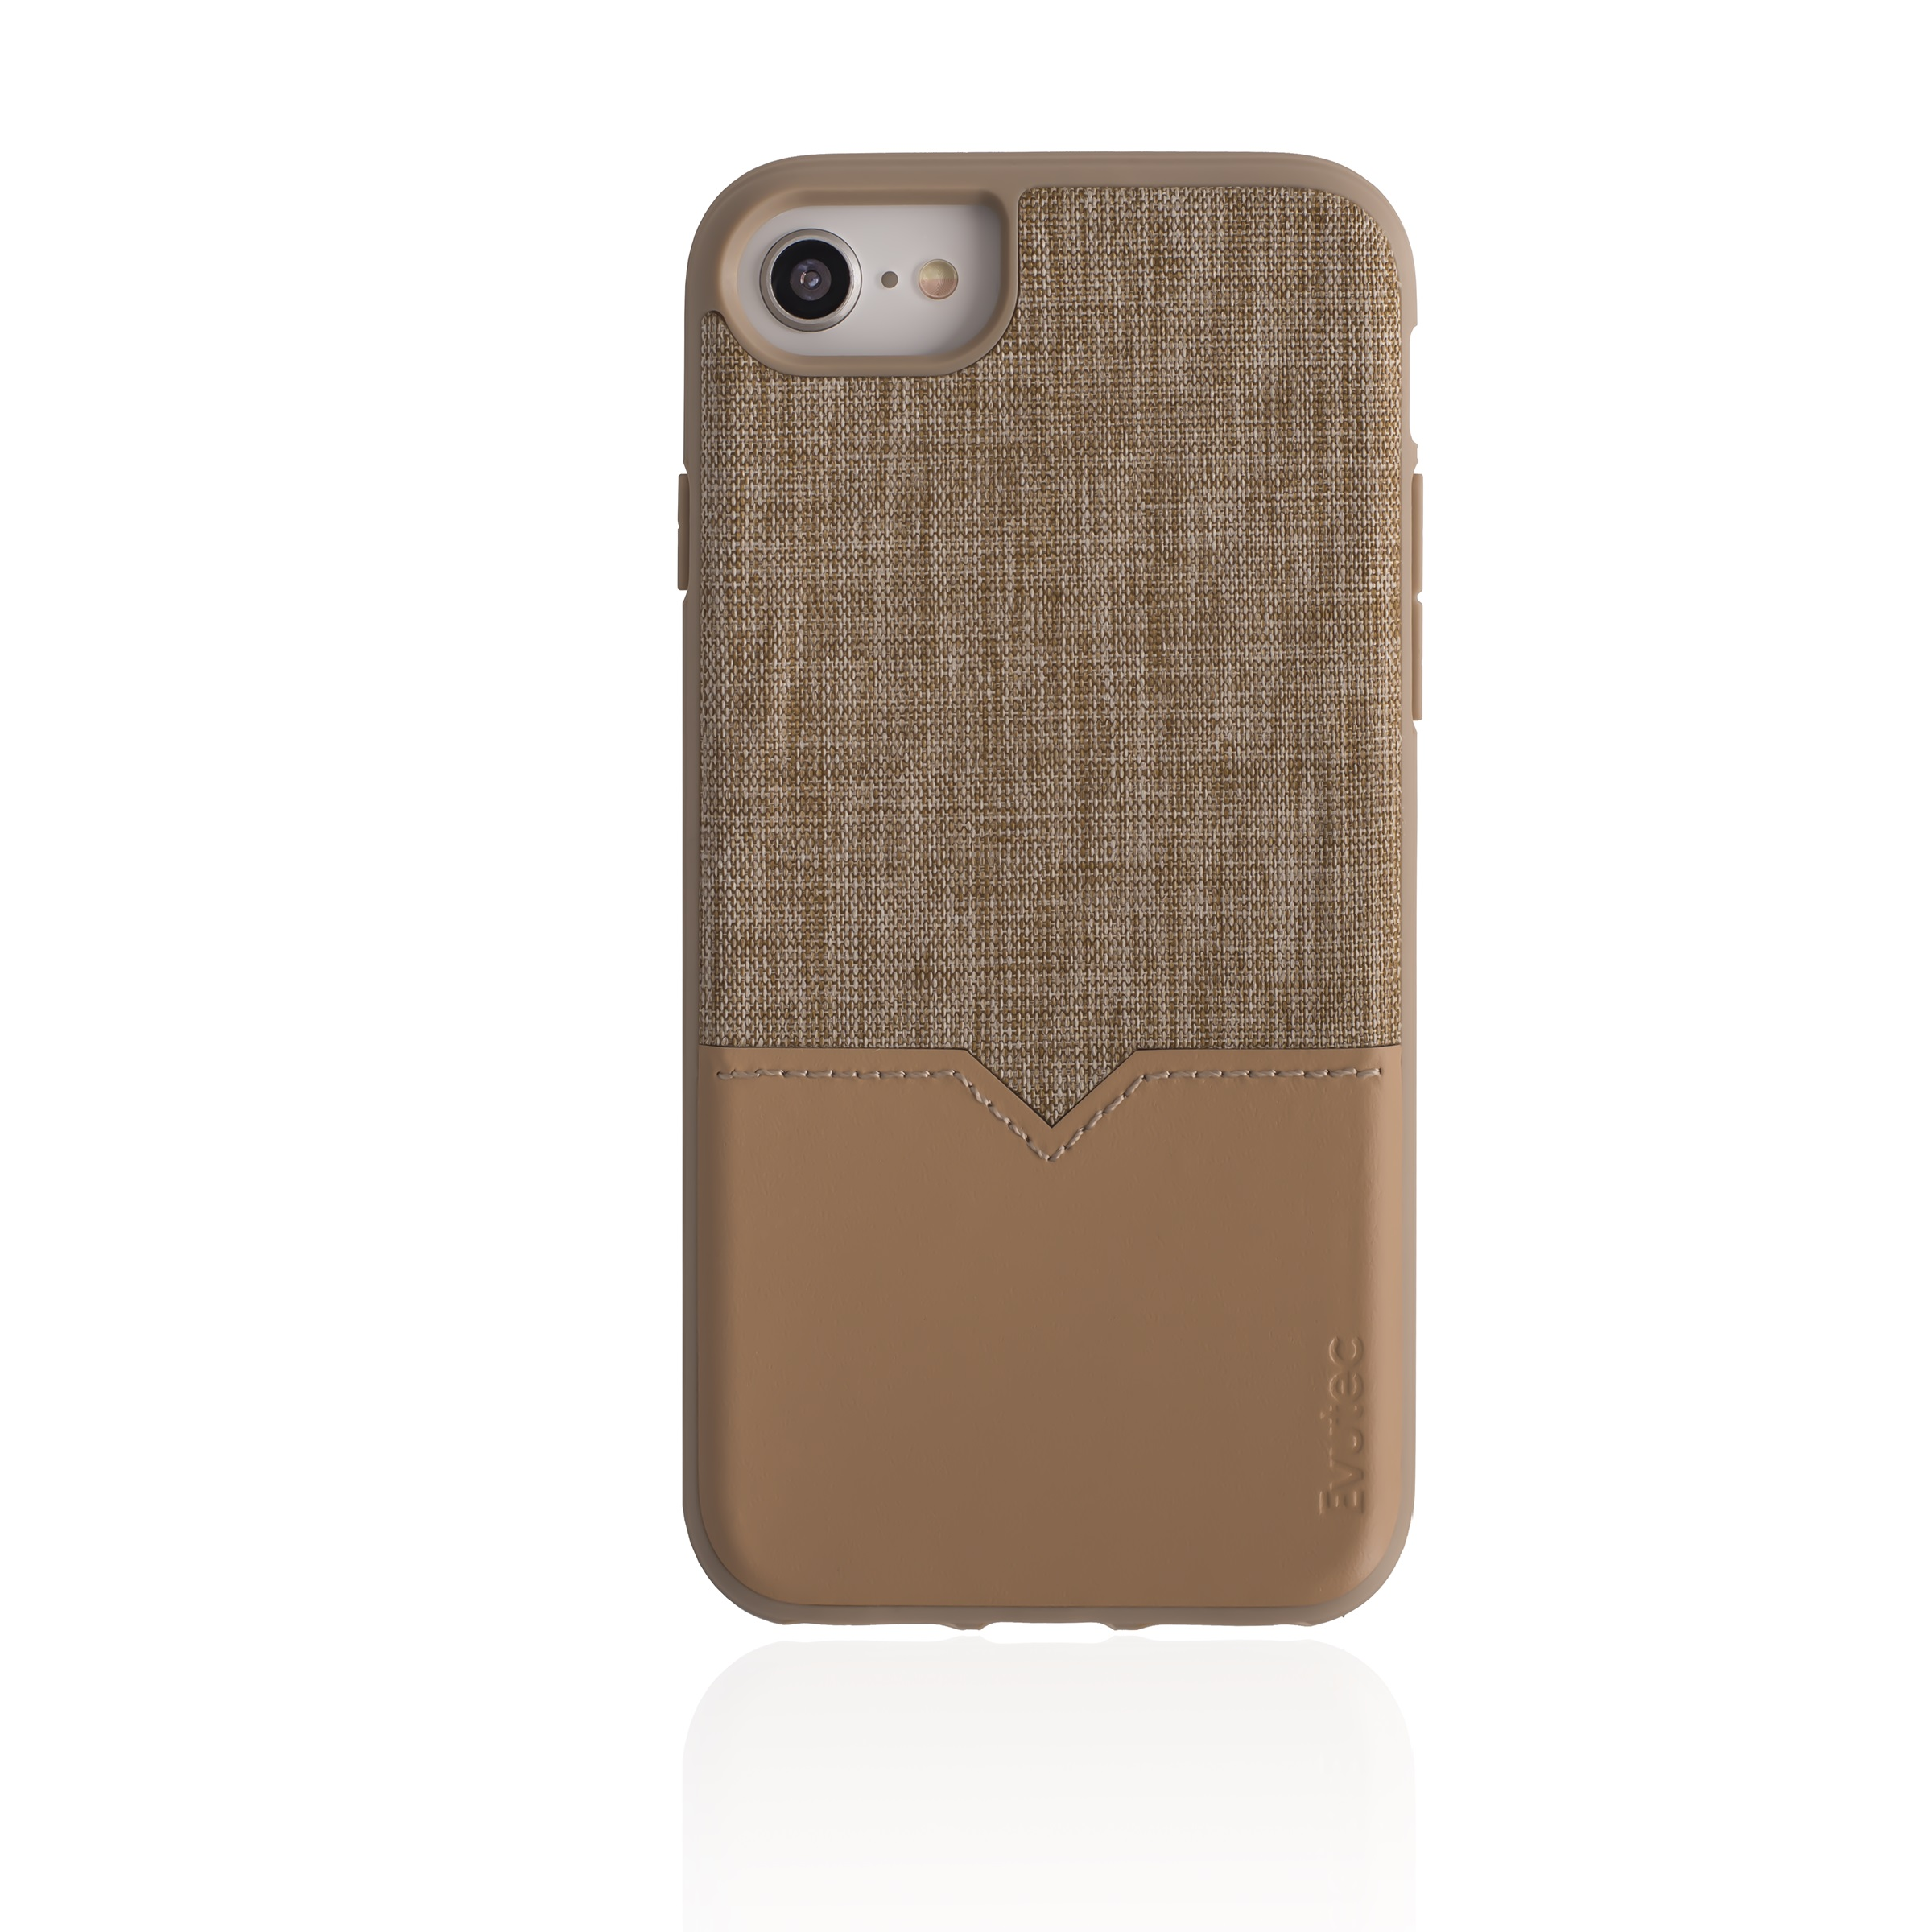 EVUTEC NH680MTD01 TAN IPHONE CASE FOR 6 6S 7 7S & 8 WITH